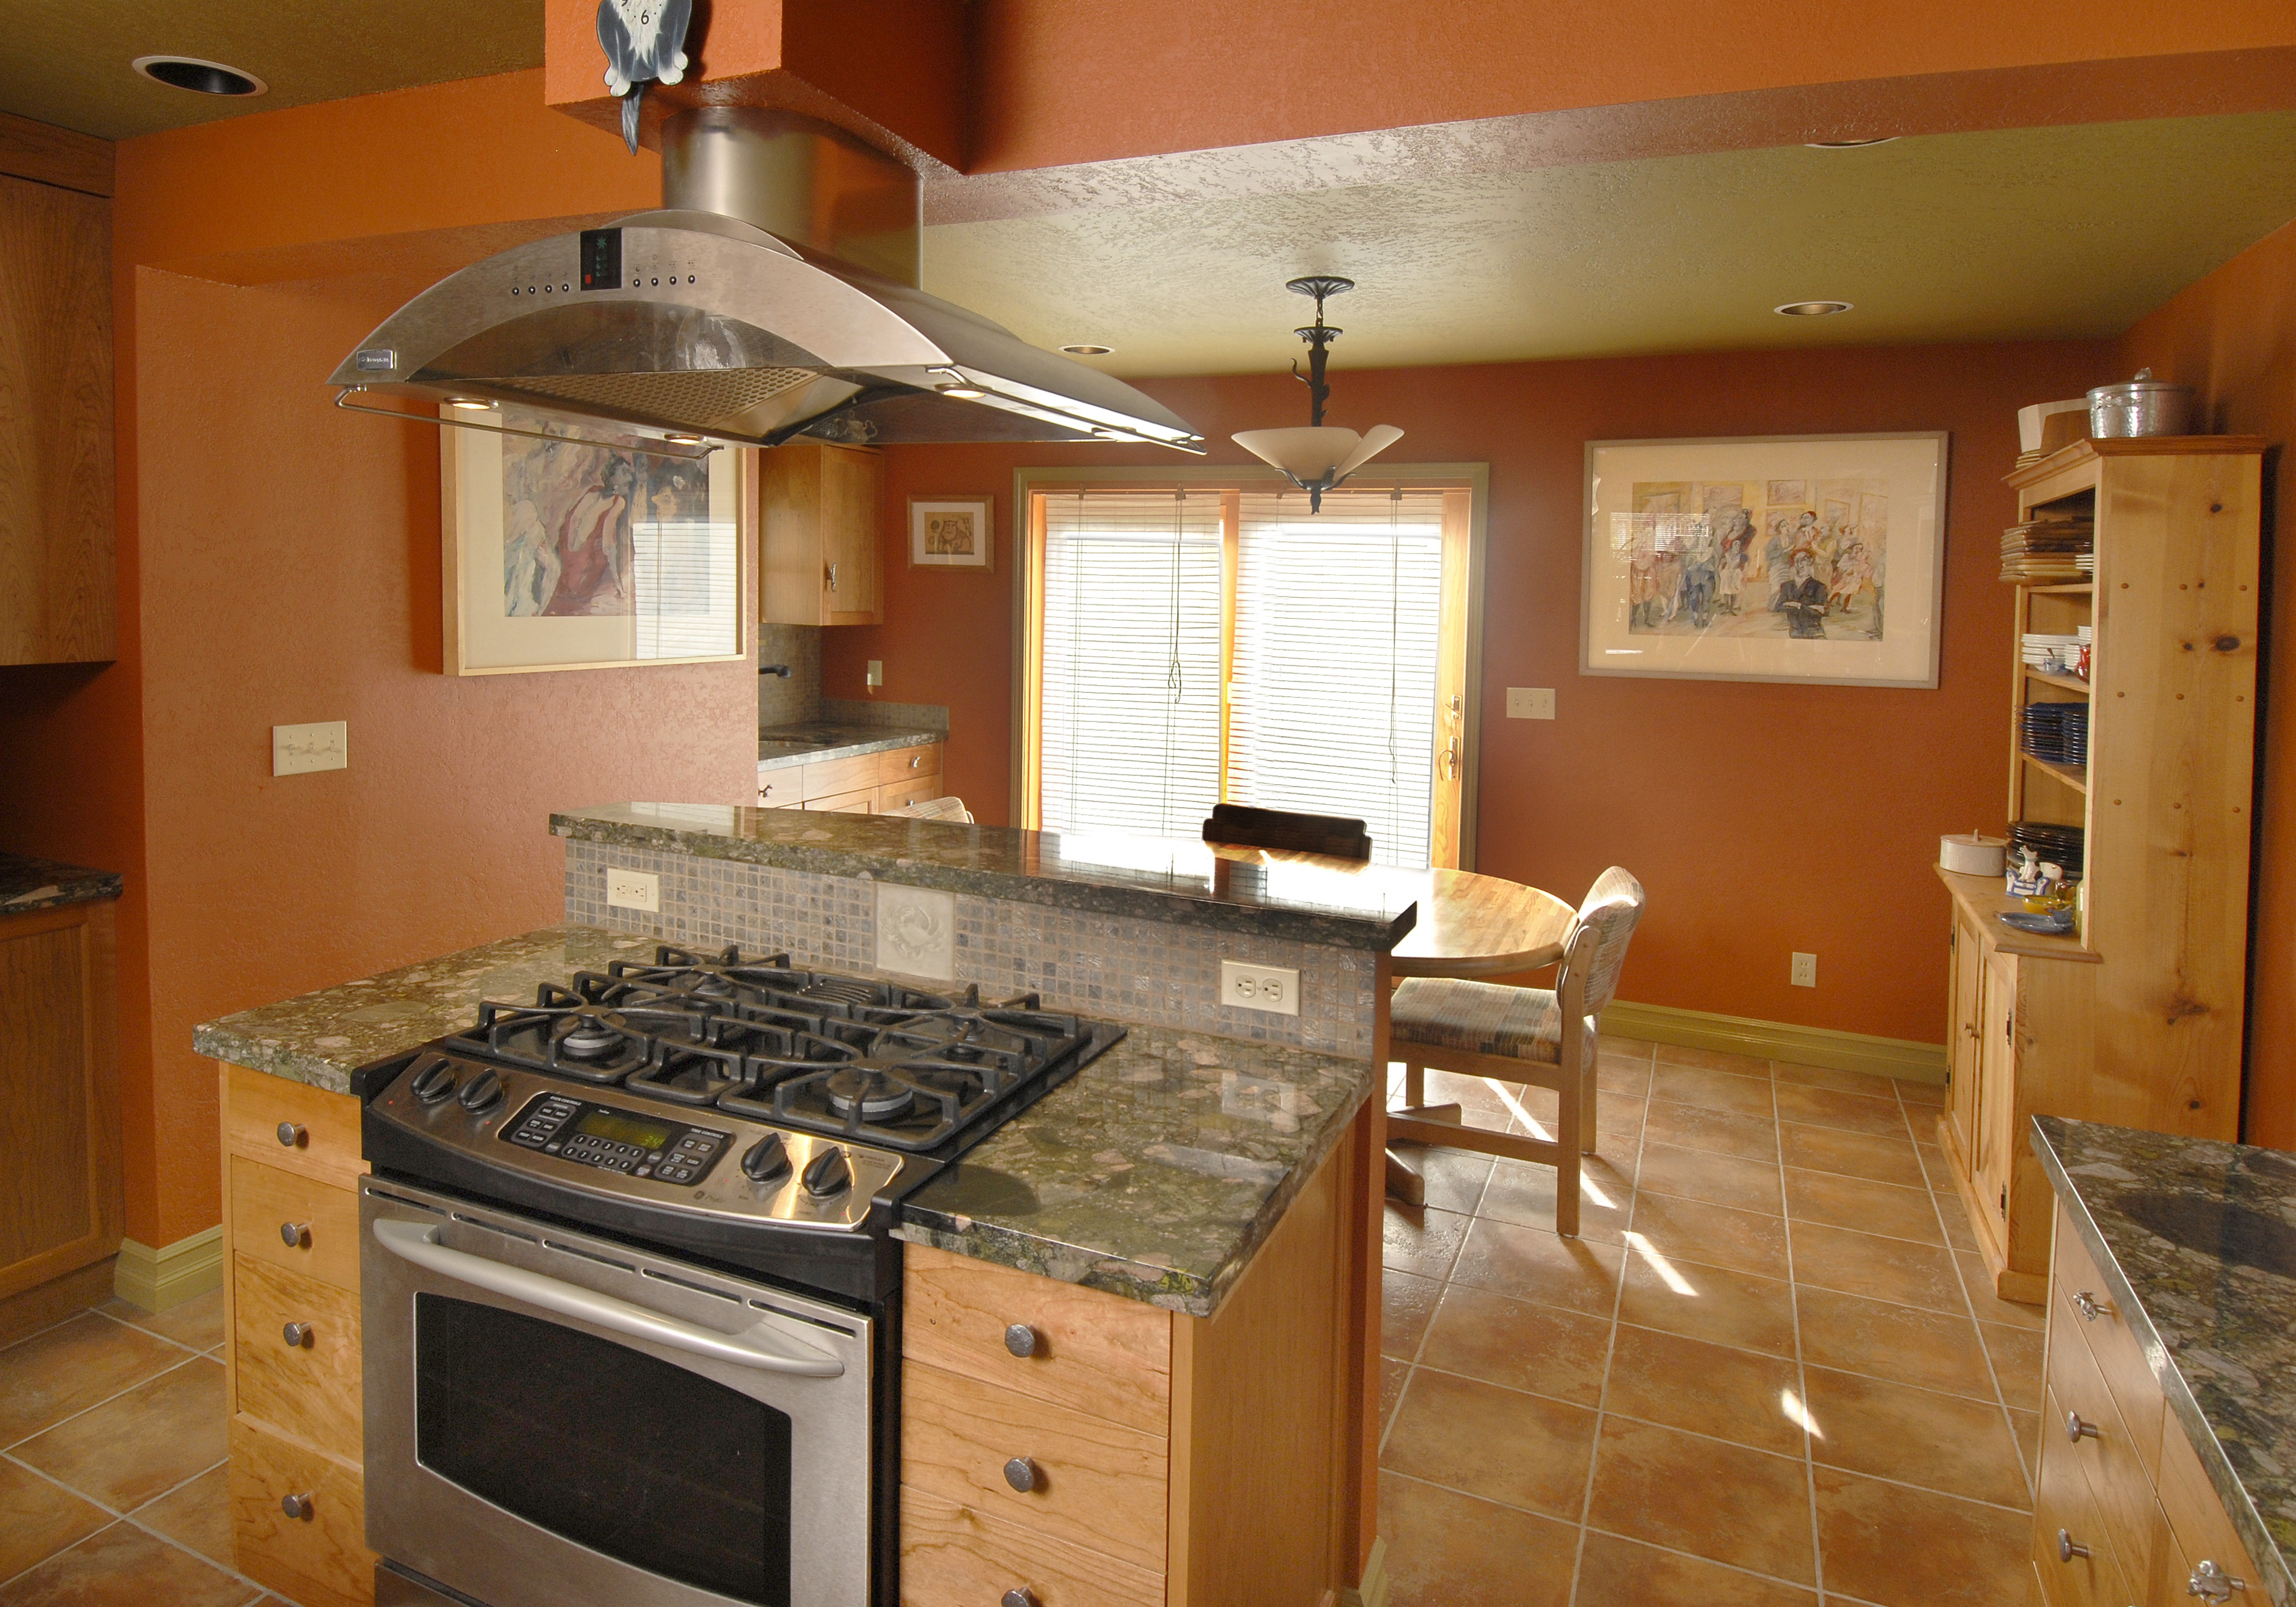 Notes From The Field Rose Construction Is A Bellingham Based Remodeling Contractor Serving